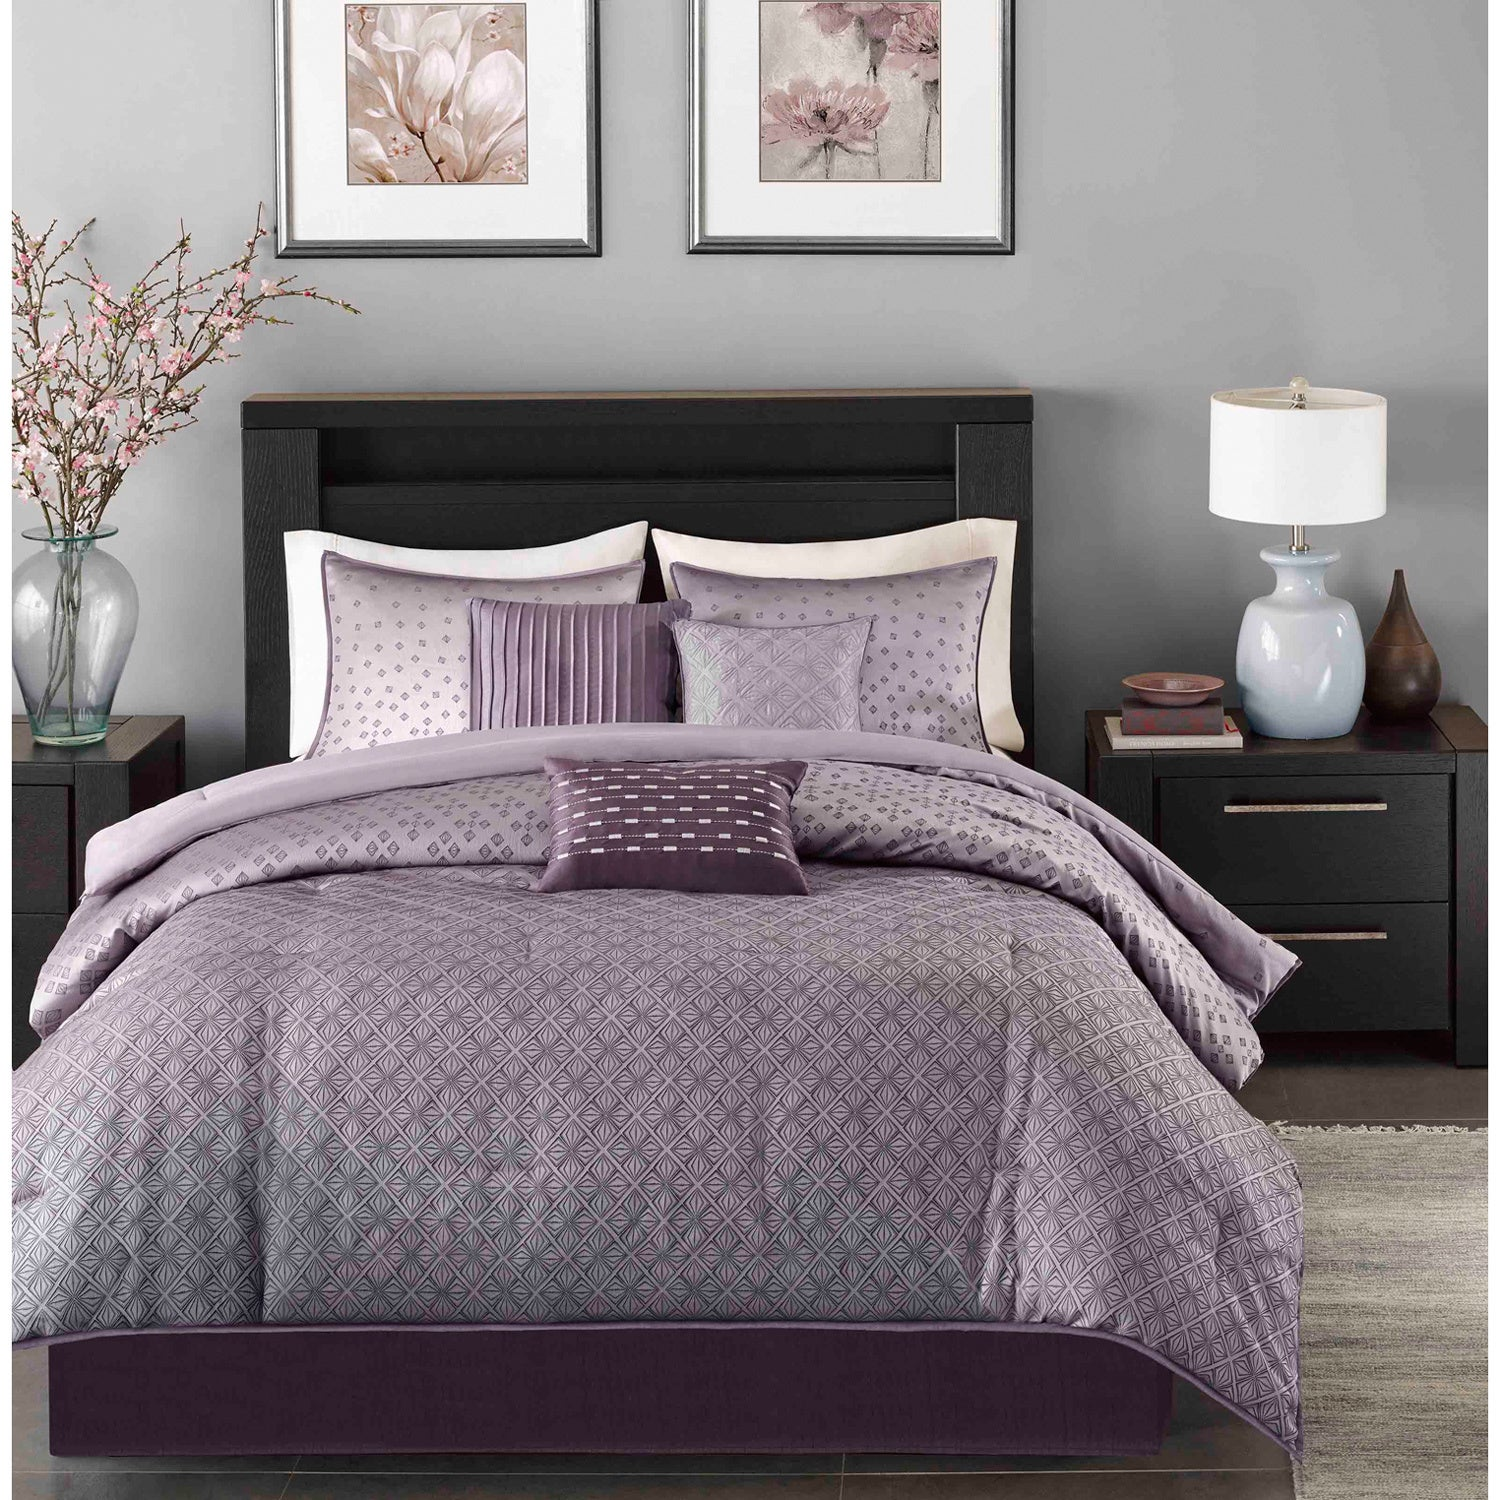 product comforter nautica cotton set shipping com free today bath bed aport bedding navy febd overstock